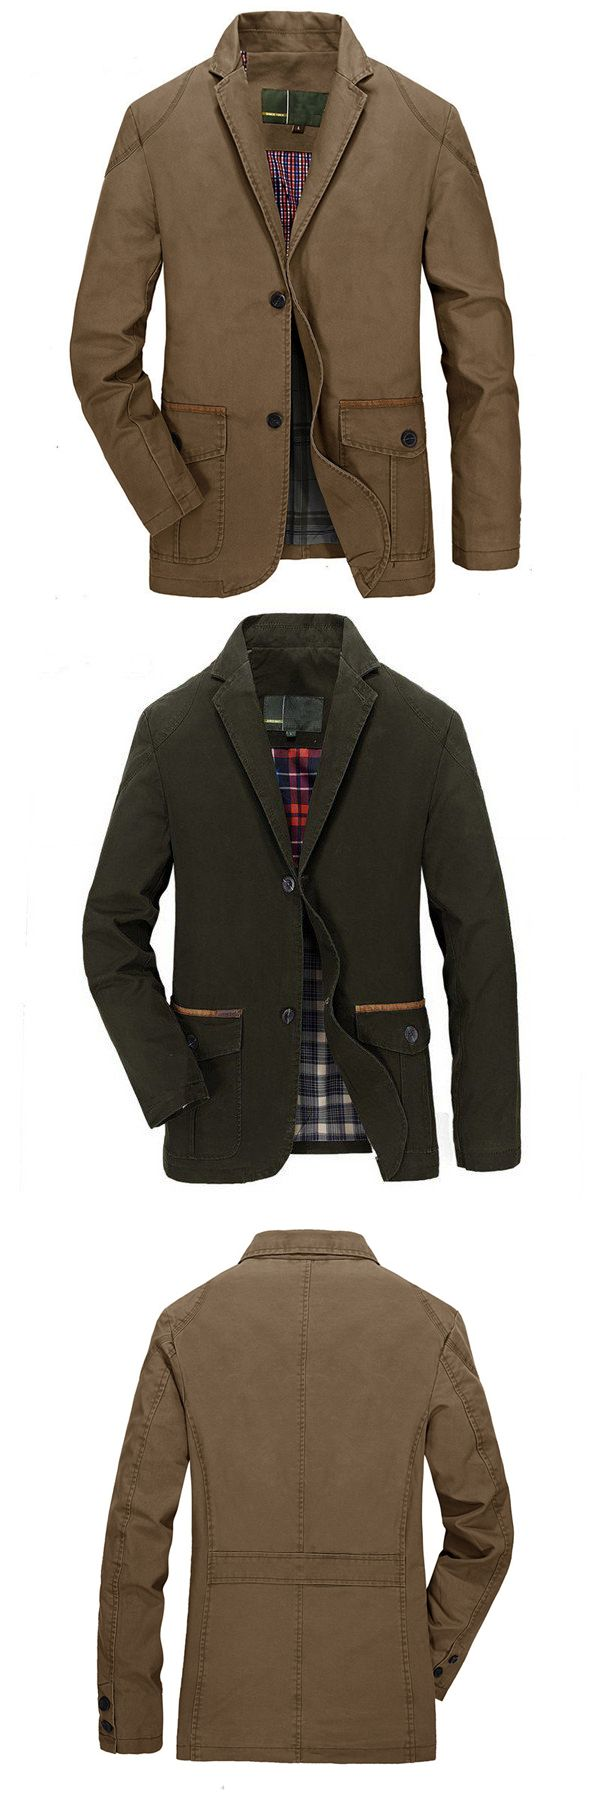 US$55.16 + Free shipping. Size: S~3XL. Color: Khaki, Army Green. Fall in love with casual and travel style! Men's Spring Fall Cotton Blend Casual Buttons Jacket Coat Suit Outwear. #mens #jackets #winter